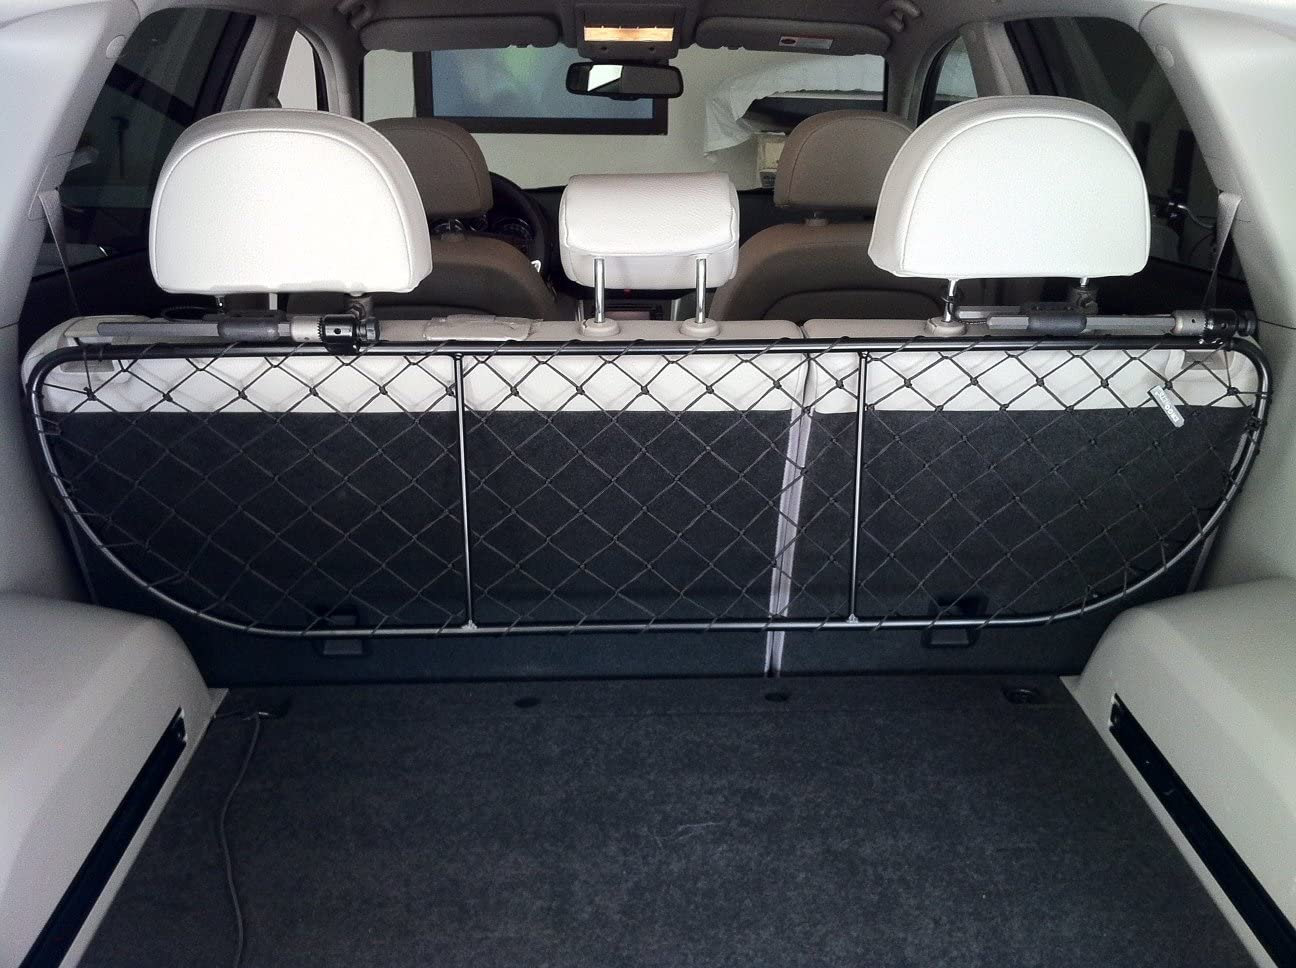 Safe guaranteed! comfortable for your dog Dog Guard for luggage and pets Pet Barrier Net and Screen Ergotech RDA65-M8